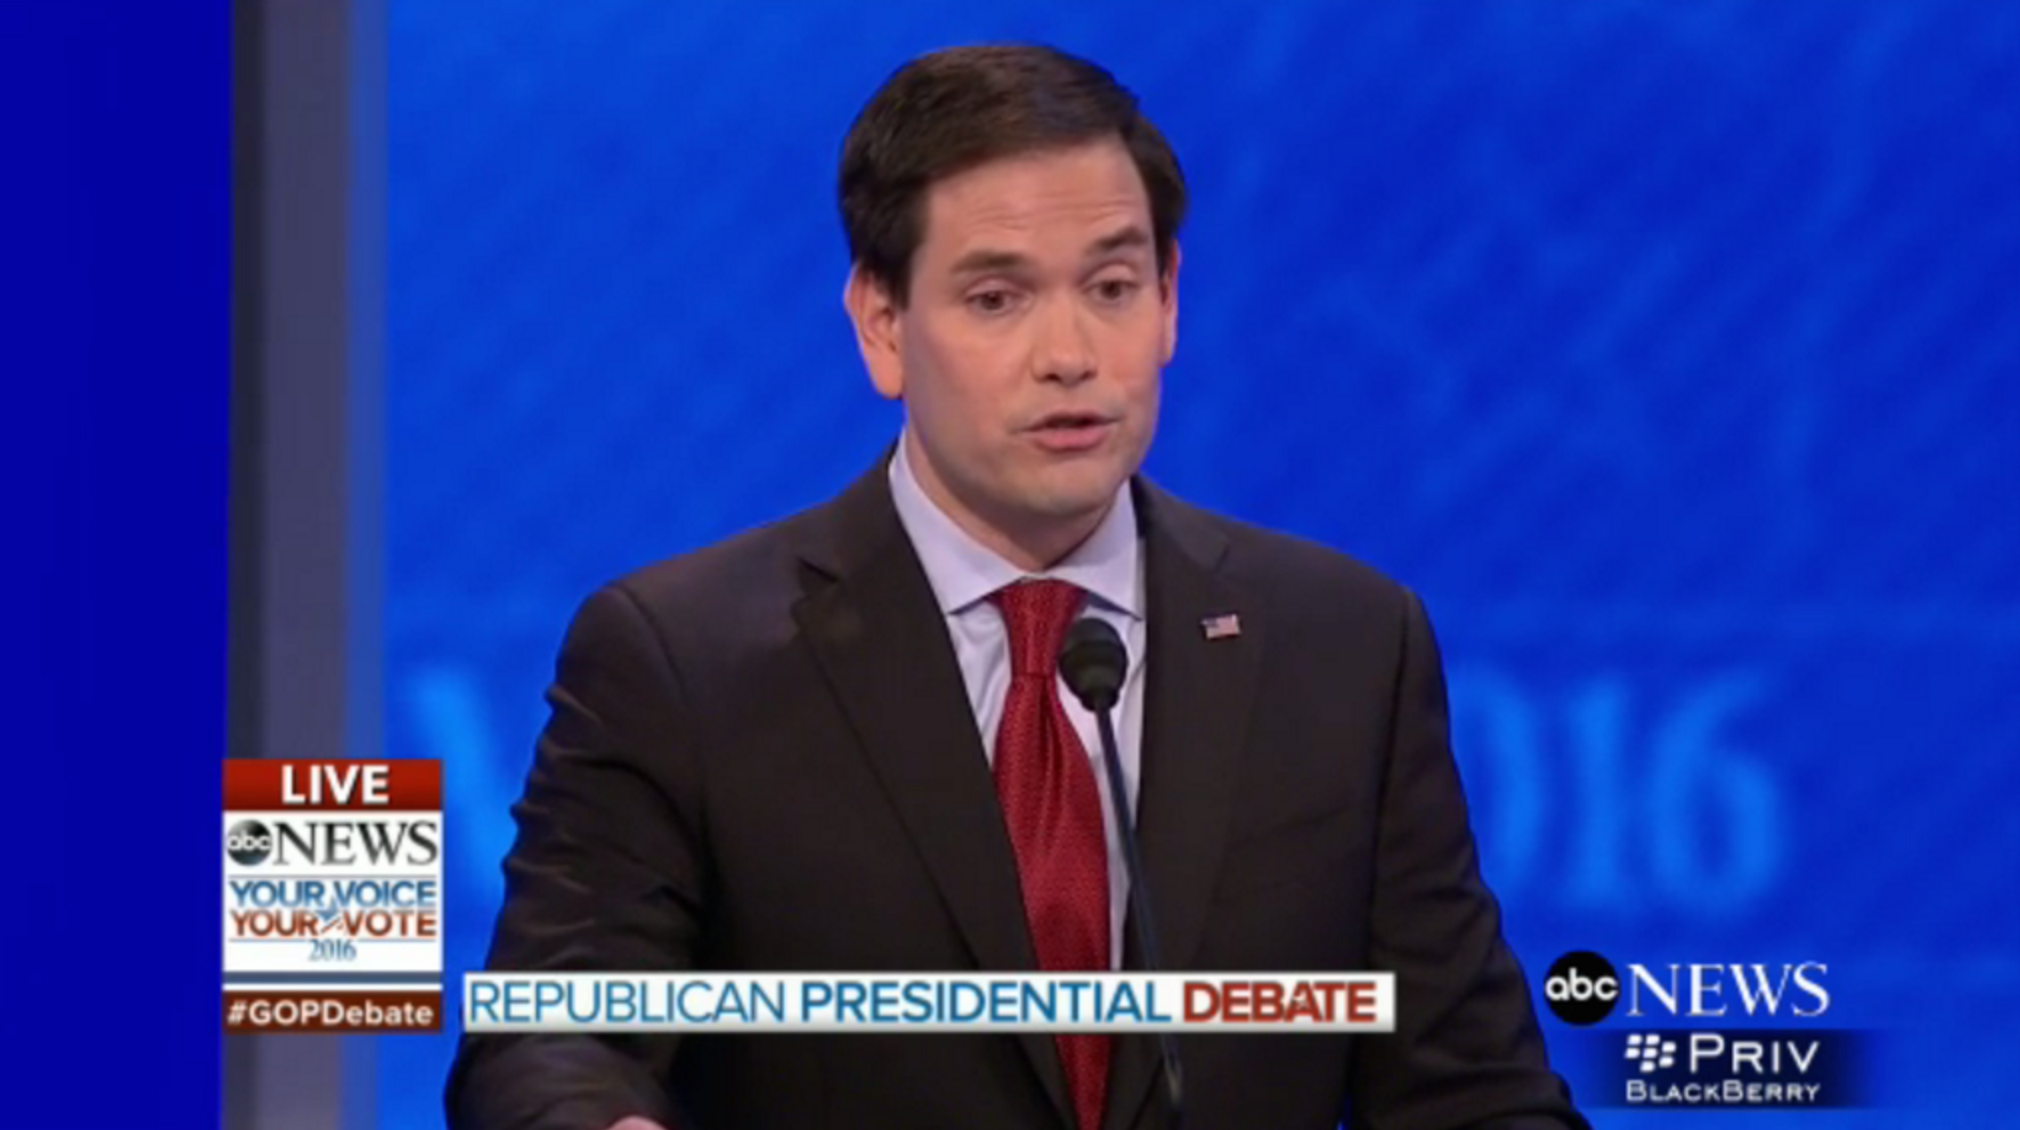 WATCH: Marco Rubio Repeats The Same Line Four Times